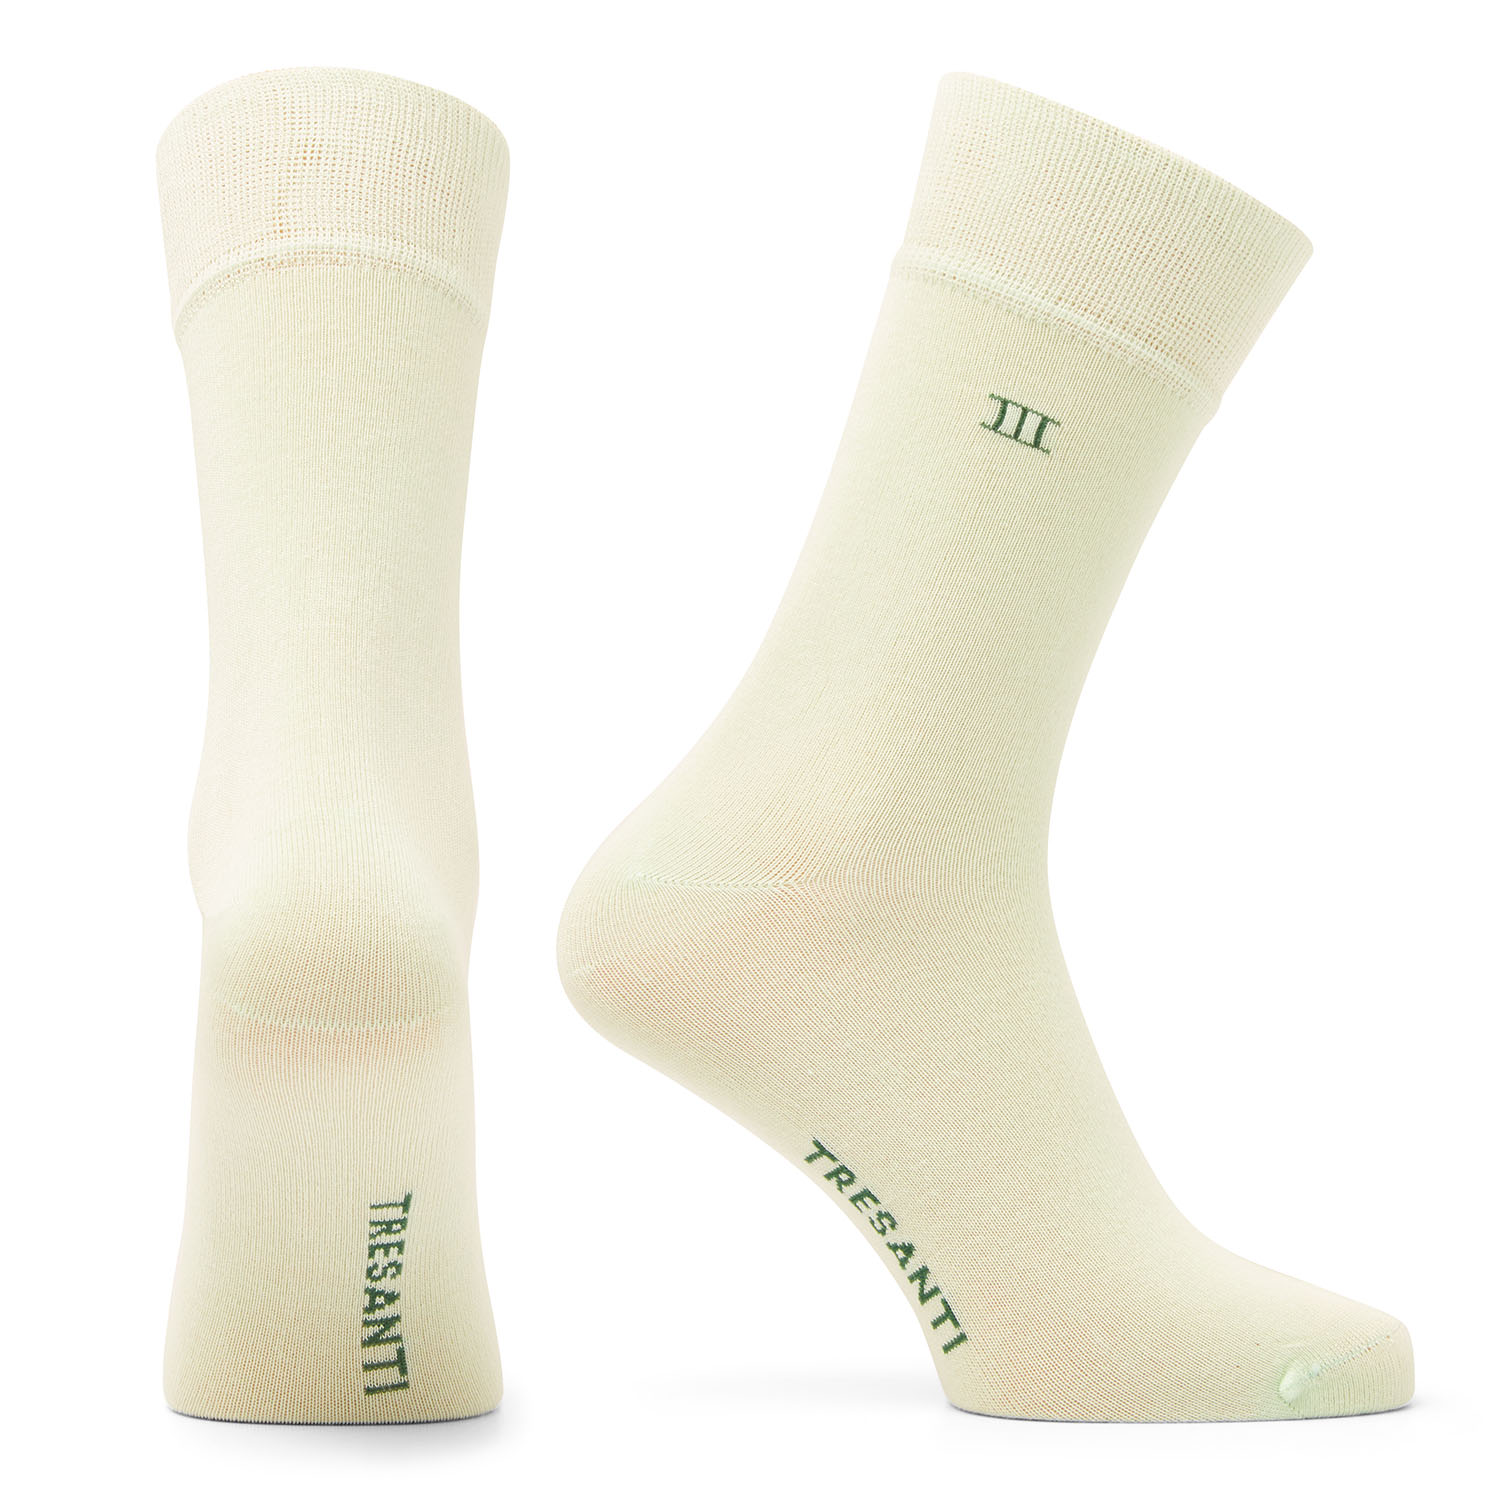 Bamboo socks mint